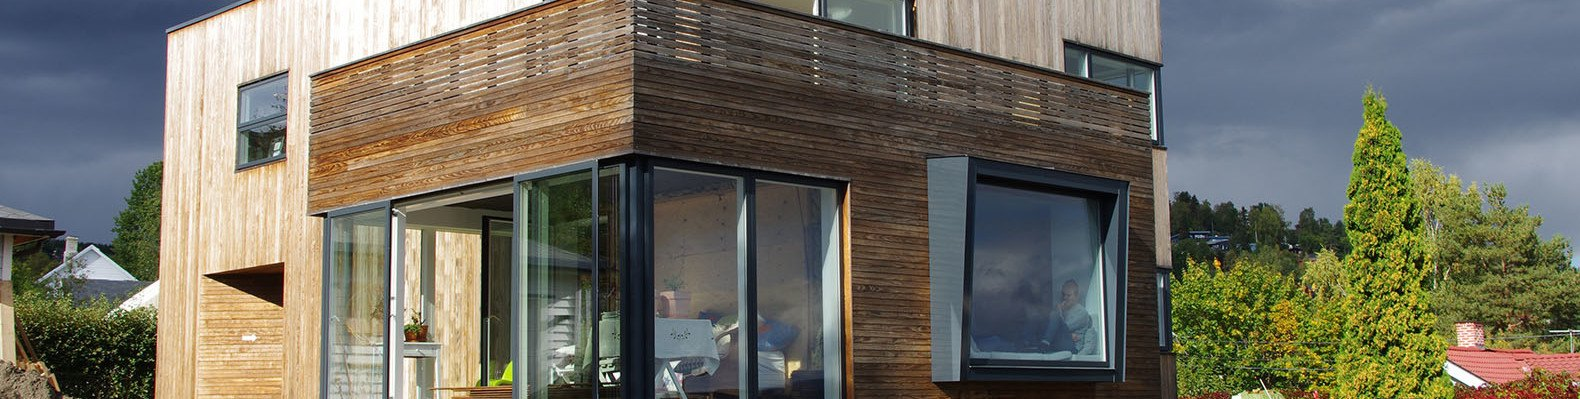 76-year-old Funkis home in Norway gets a Passive House makeover ...